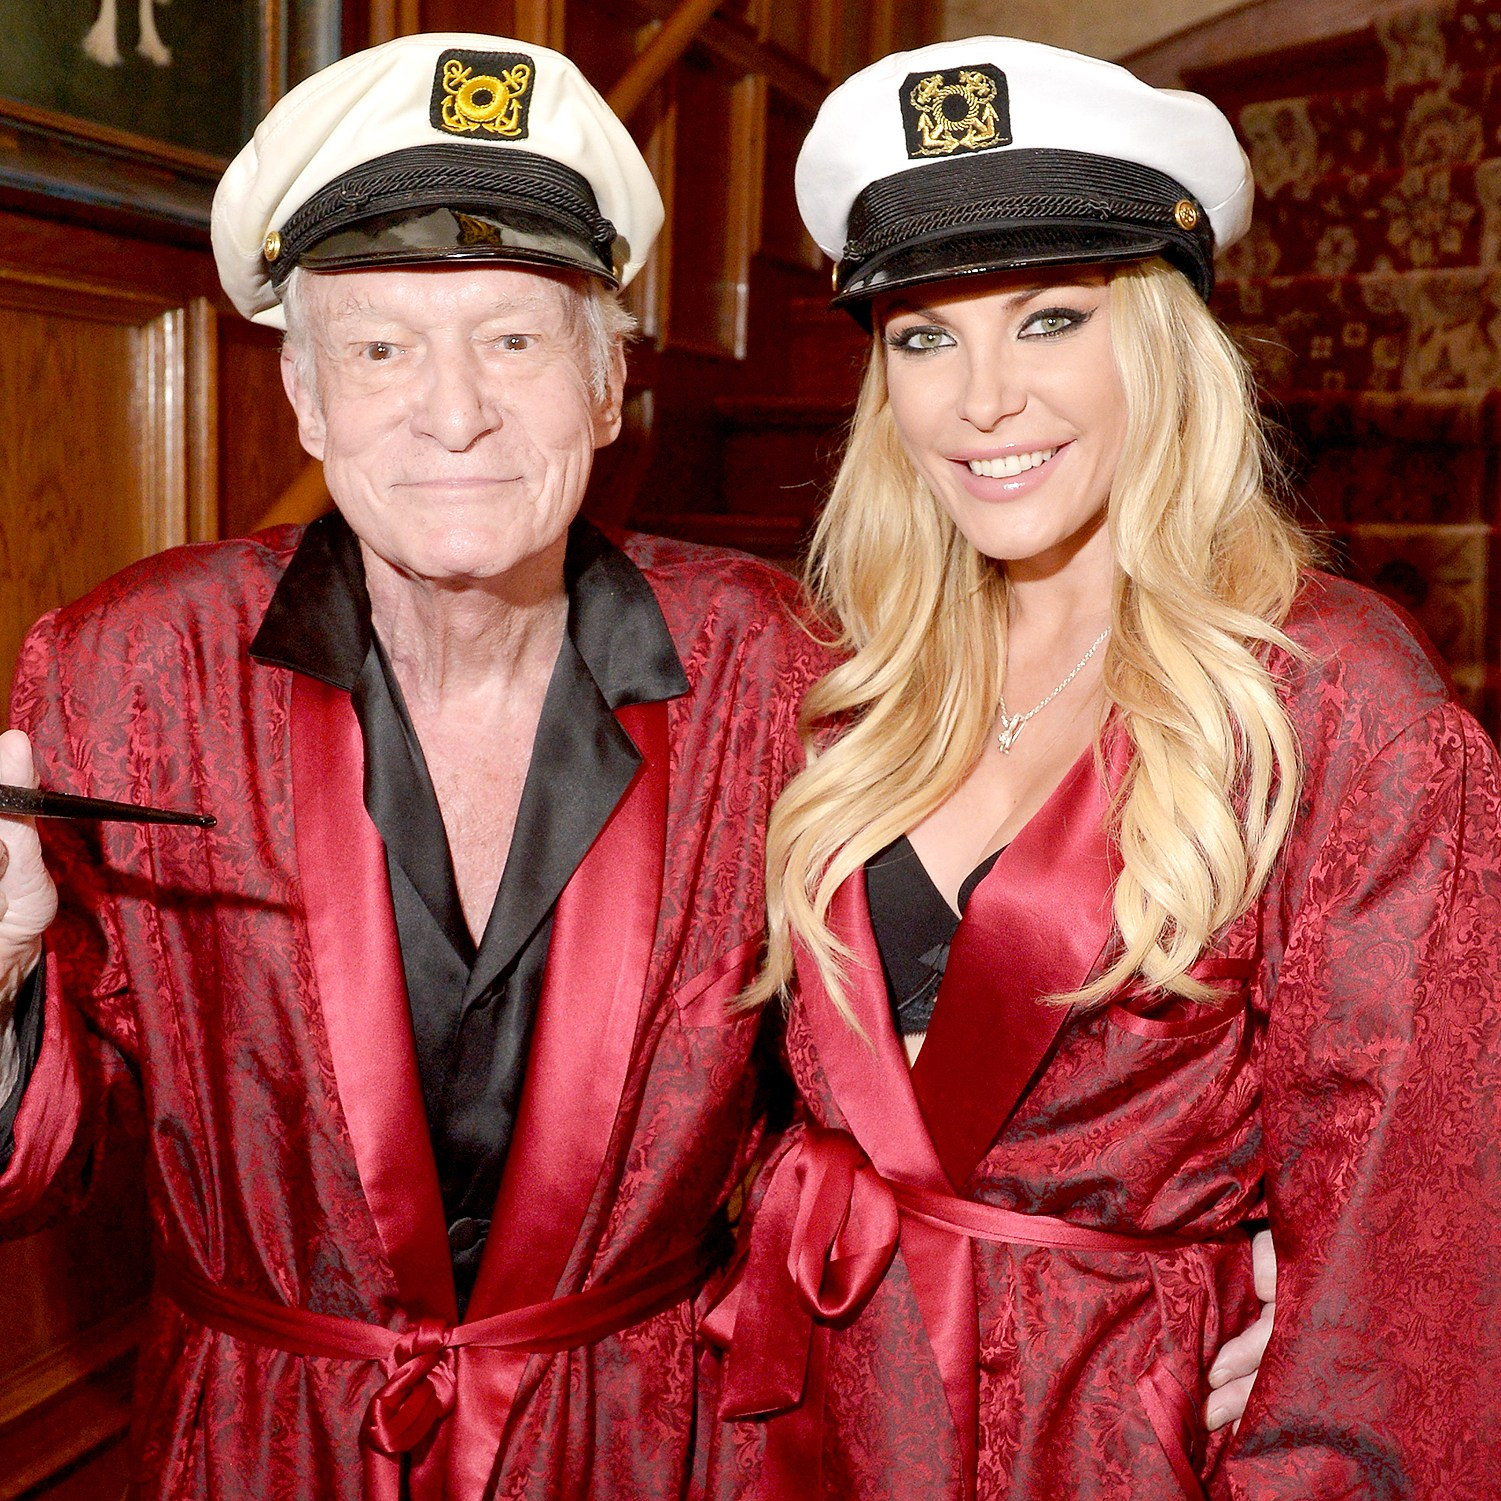 Hugh Hefner and Crystal Hefner attend Playboy Mansion's Annual Halloween Bash at The Playboy Mansion on October 25, 2014 in Los Angeles, California.